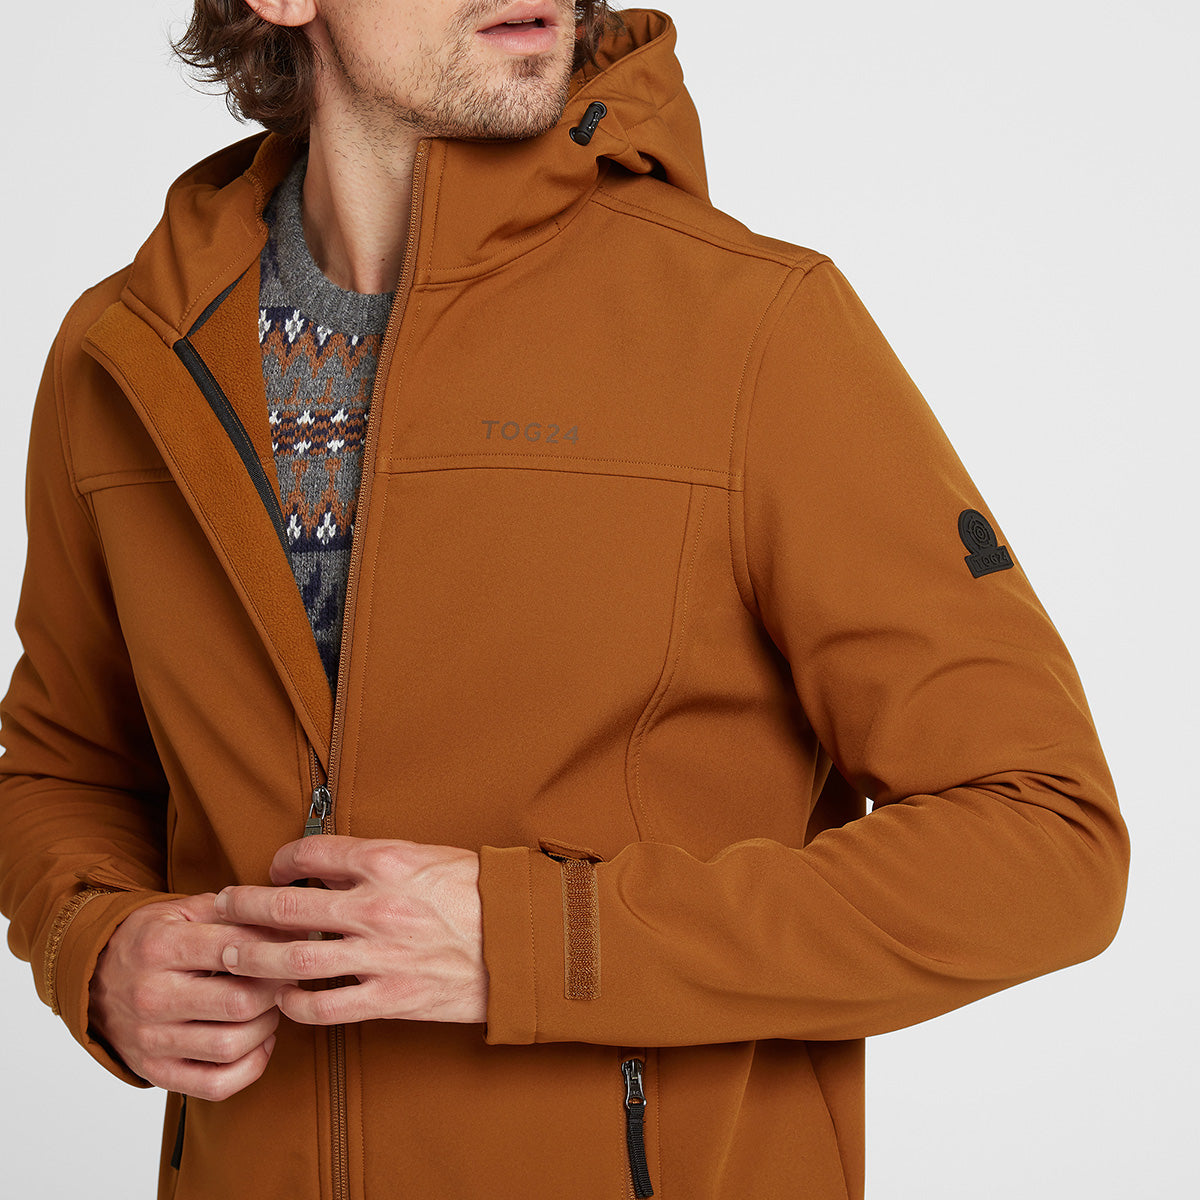 Feizor Mens Softshell Hooded Jacket  - Amber image 4